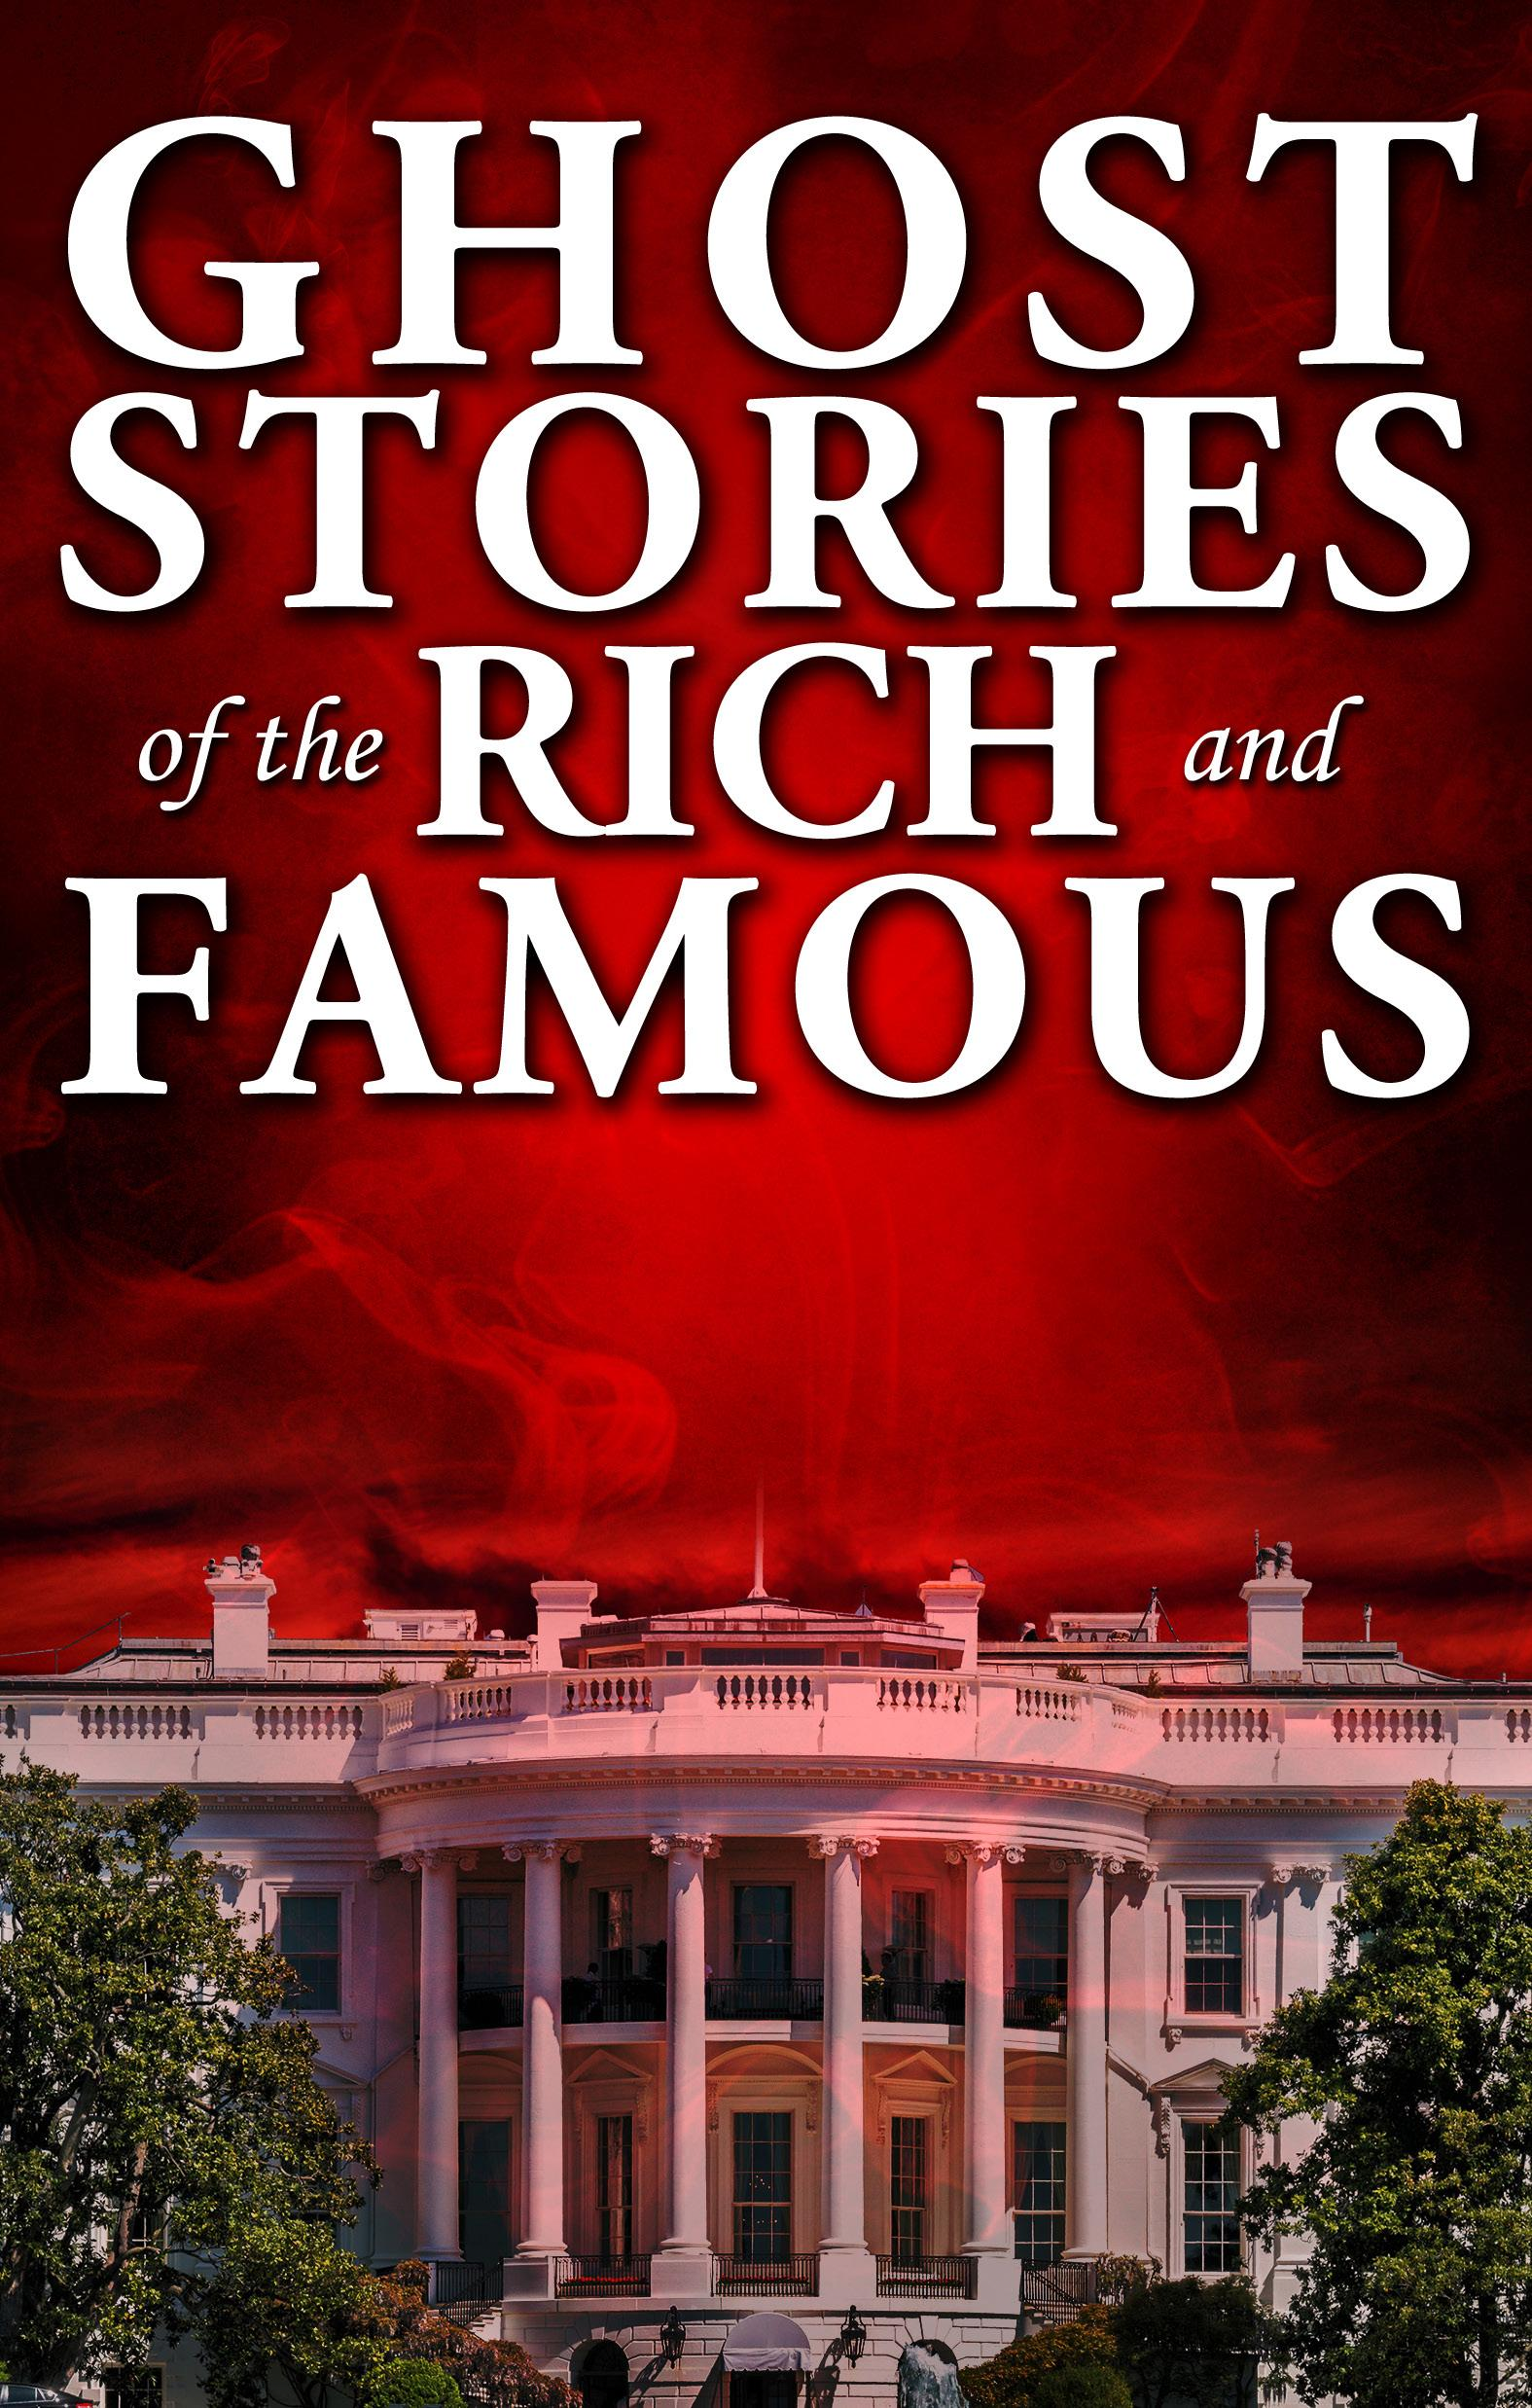 Ghost Stories of the Rich and Famous